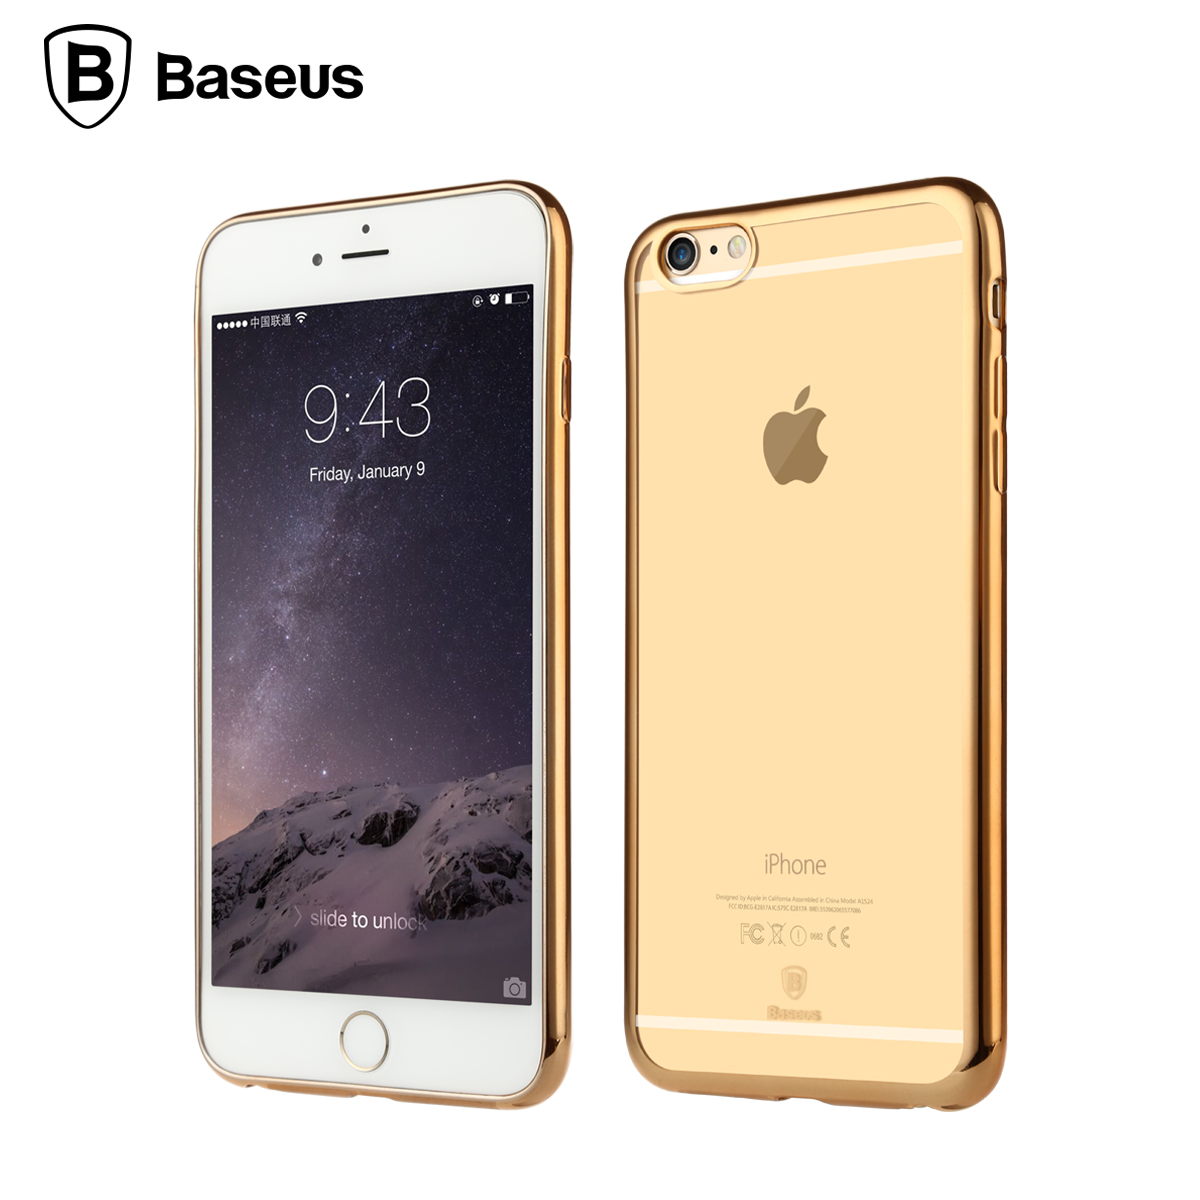 Baseus For iPhone 6 6s Case Shining Arc Edge Plating Cover Shell Luxury Soft TPU Gel Case For iPhone 6 Plus 6s Plus